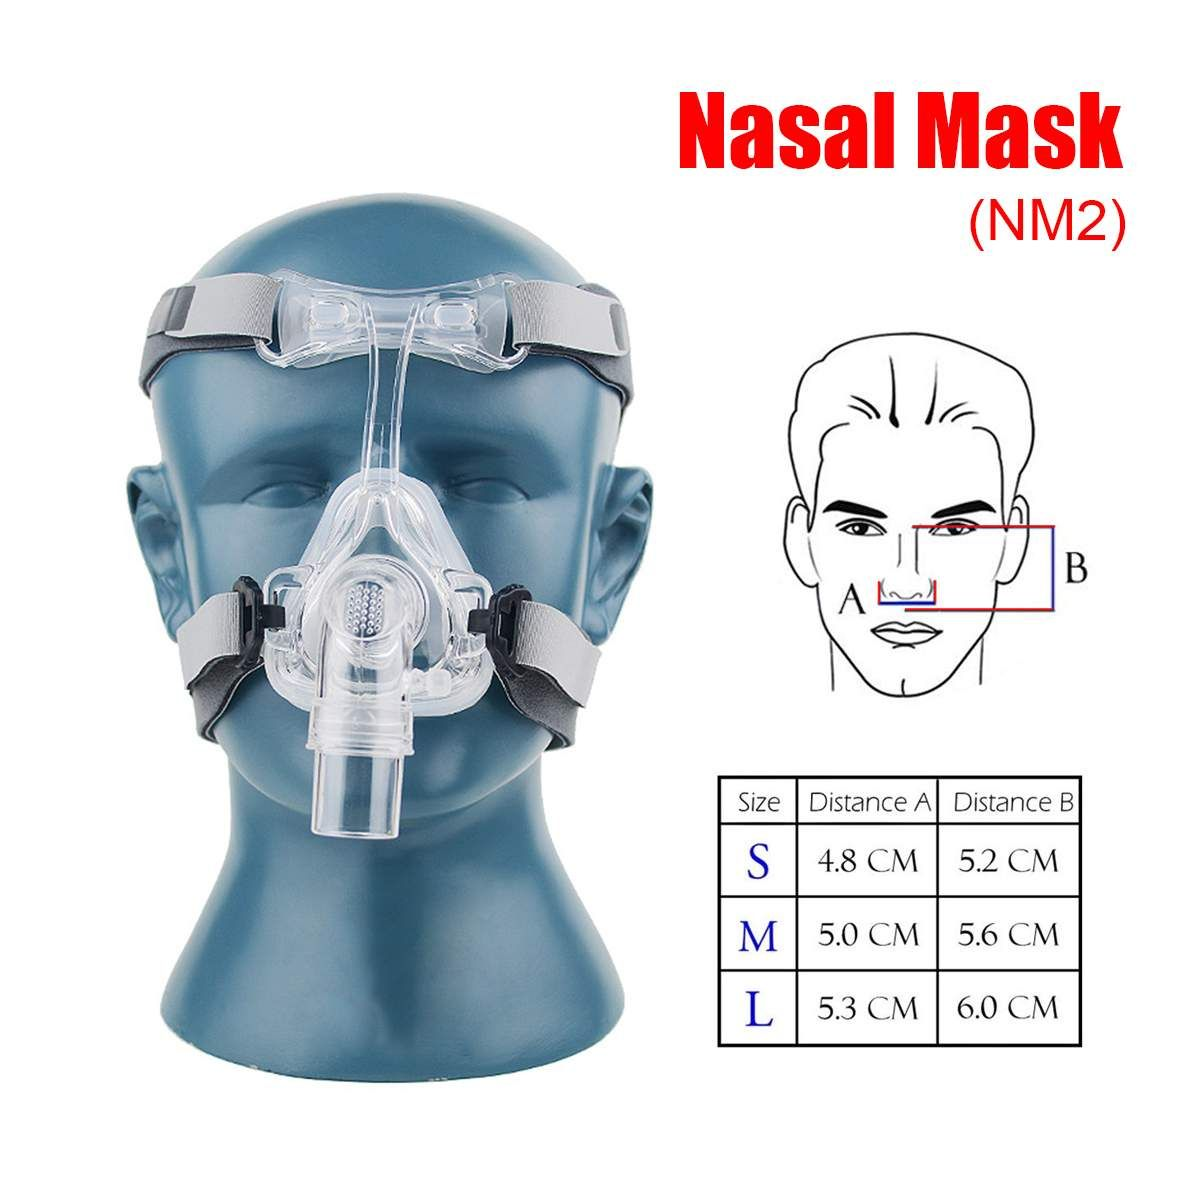 S/M/L Size CPAP Mask Nasal Mask NM2 With Adjustable Strap Headgear Breathing Masks For Sleep Apnea Nasal Anti Snoring Treatment